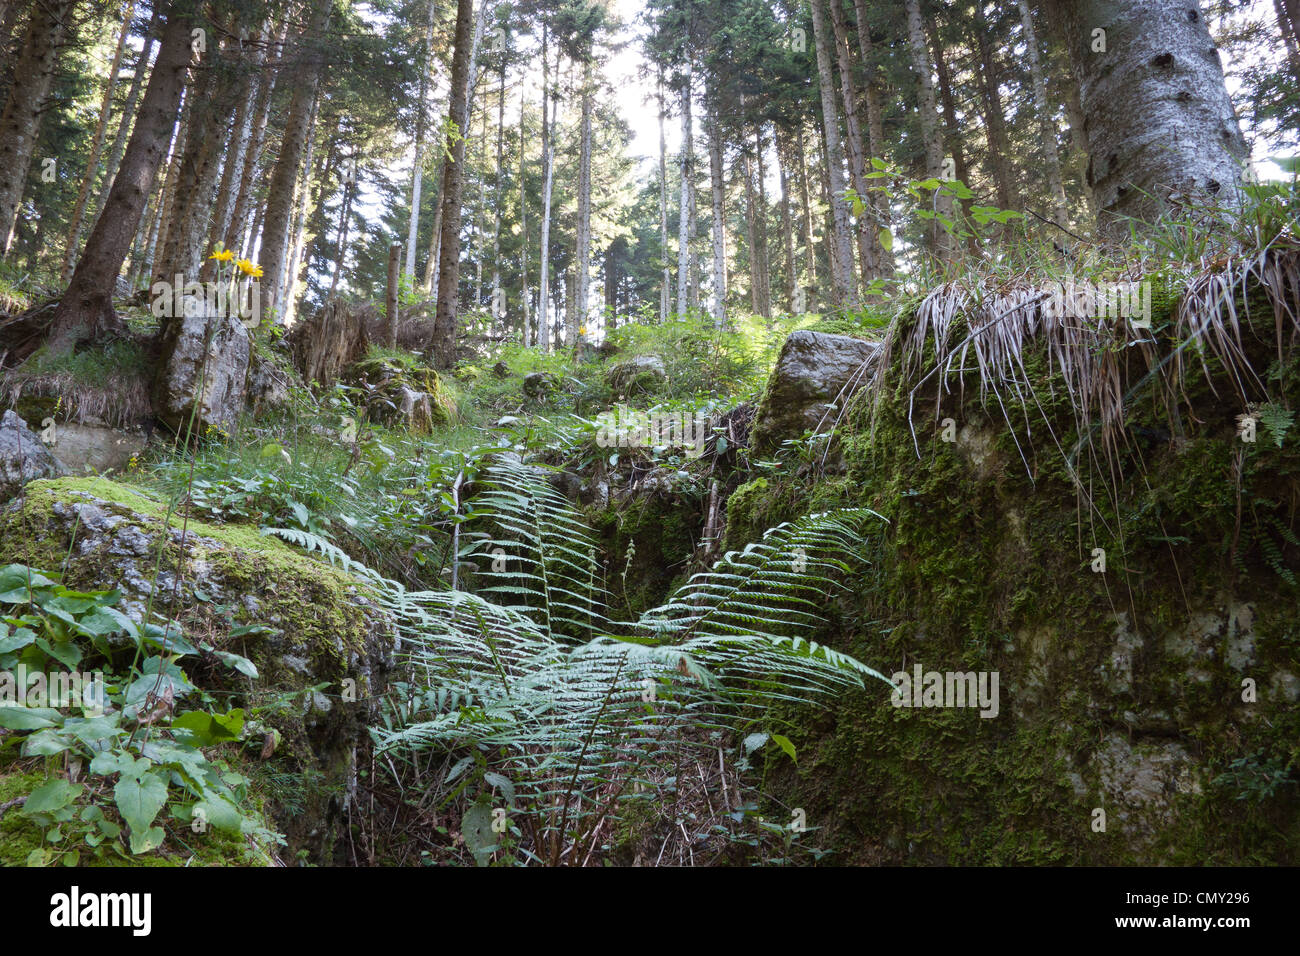 Conifers and ferns in the heart of a wood on the plateau of Asiago. Stock Photo